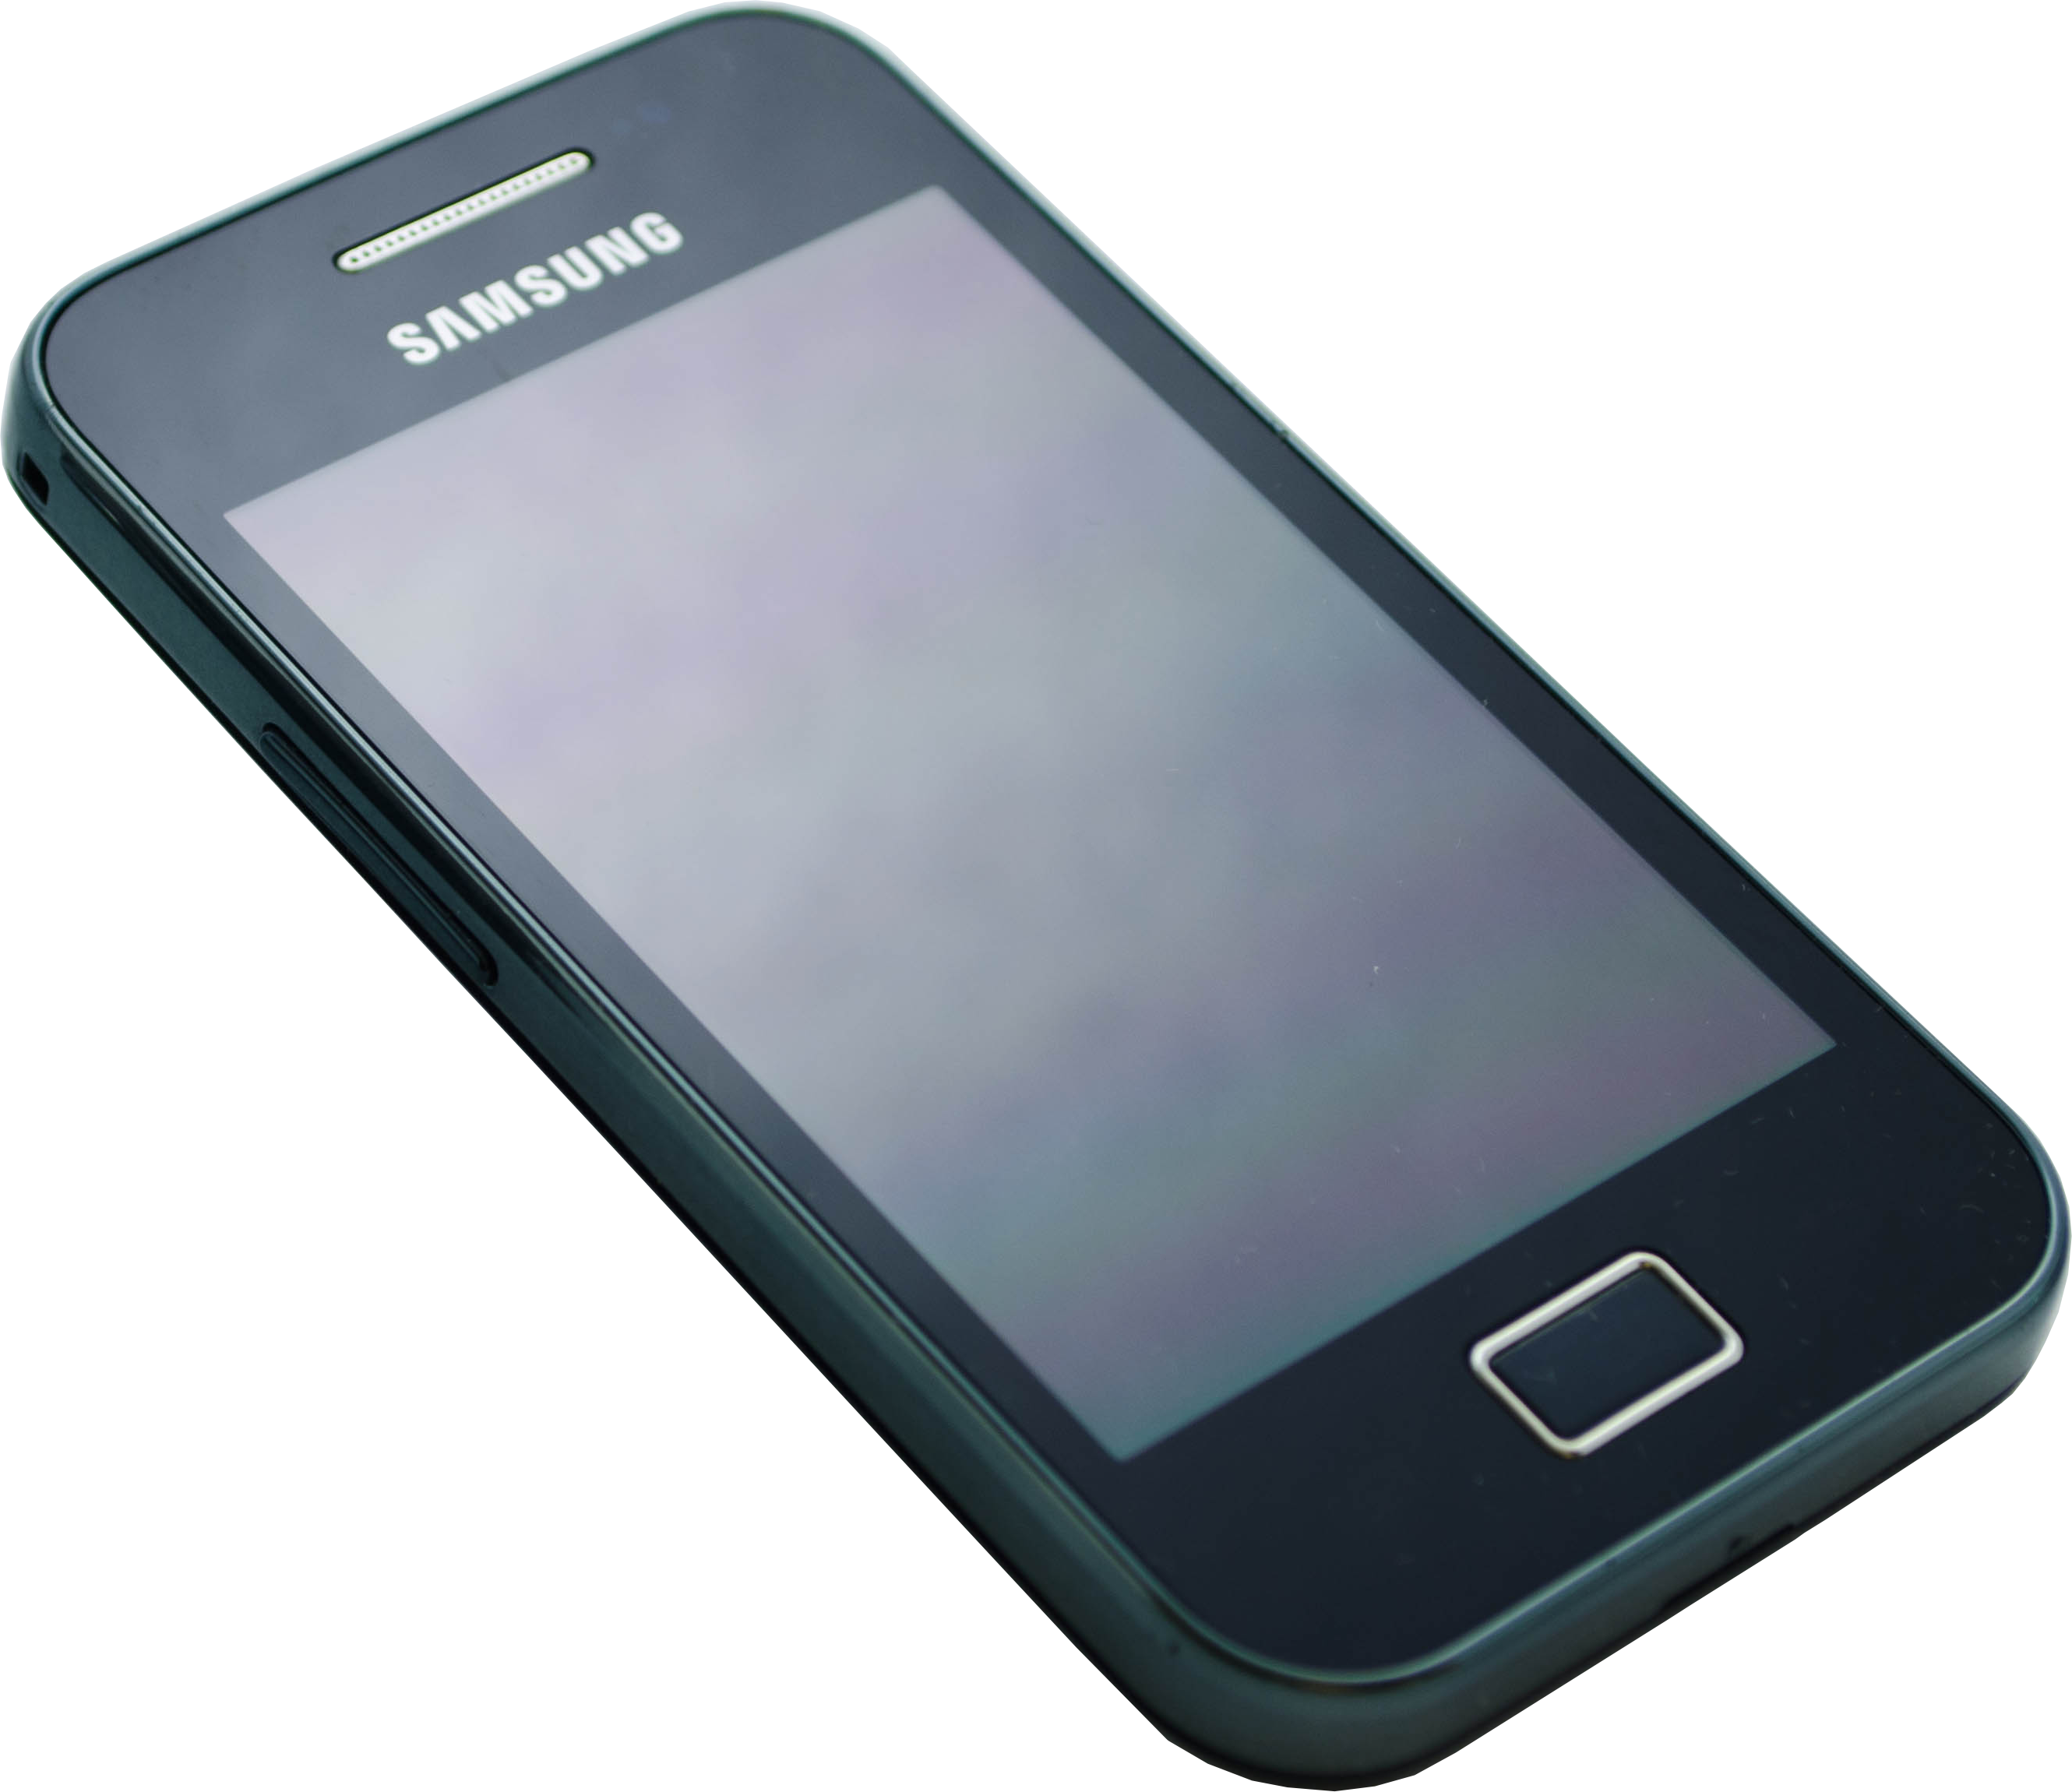 Samsung Galaxy Ace Wikipedia